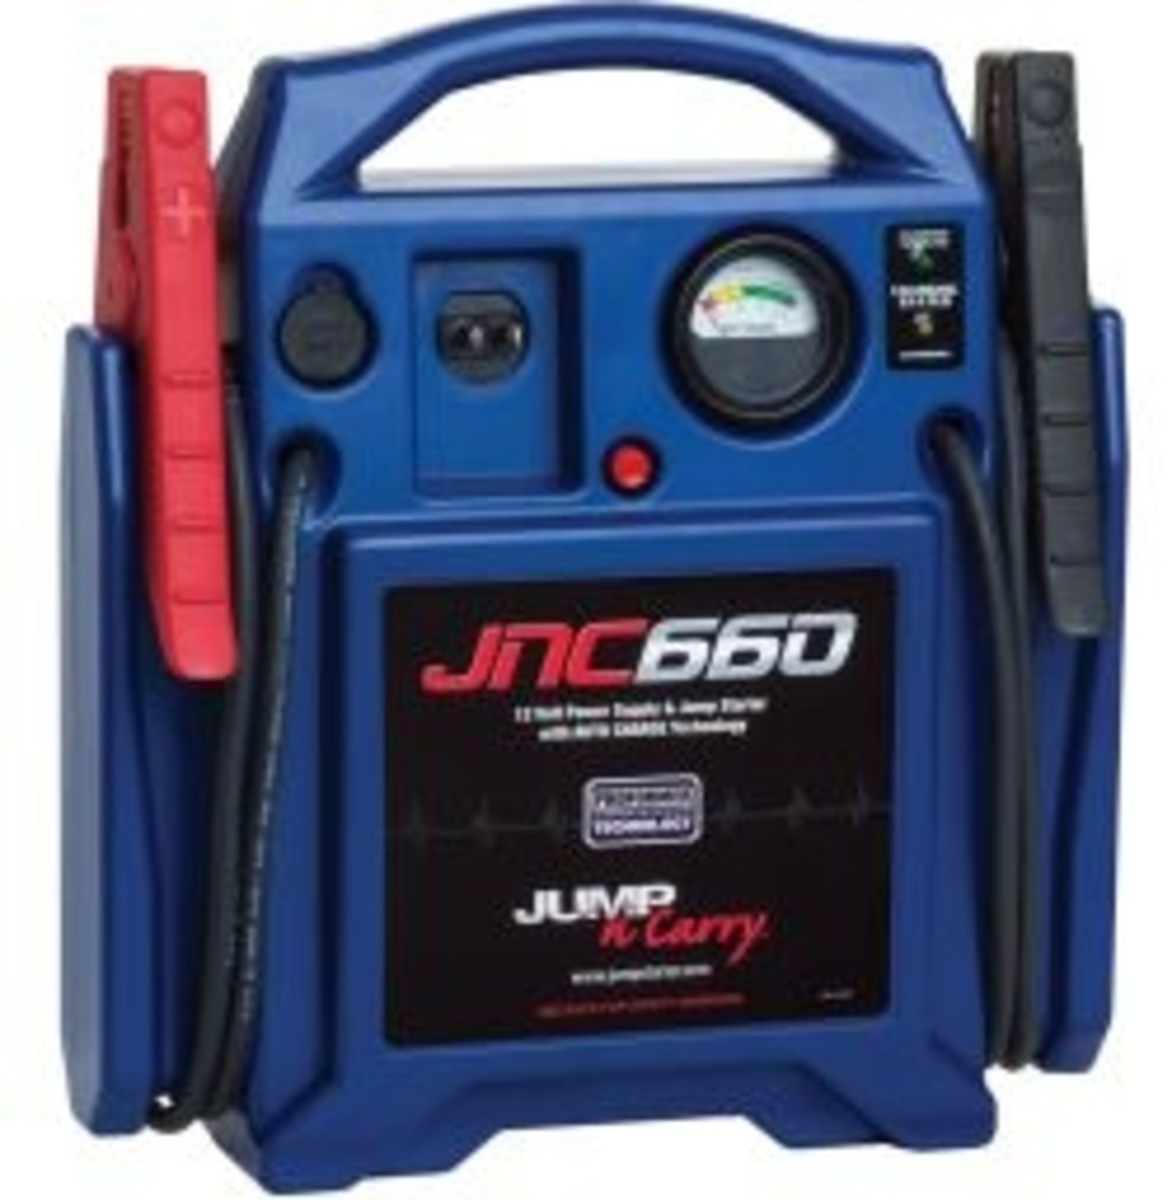 Best Battery Jump Starter For Your Money